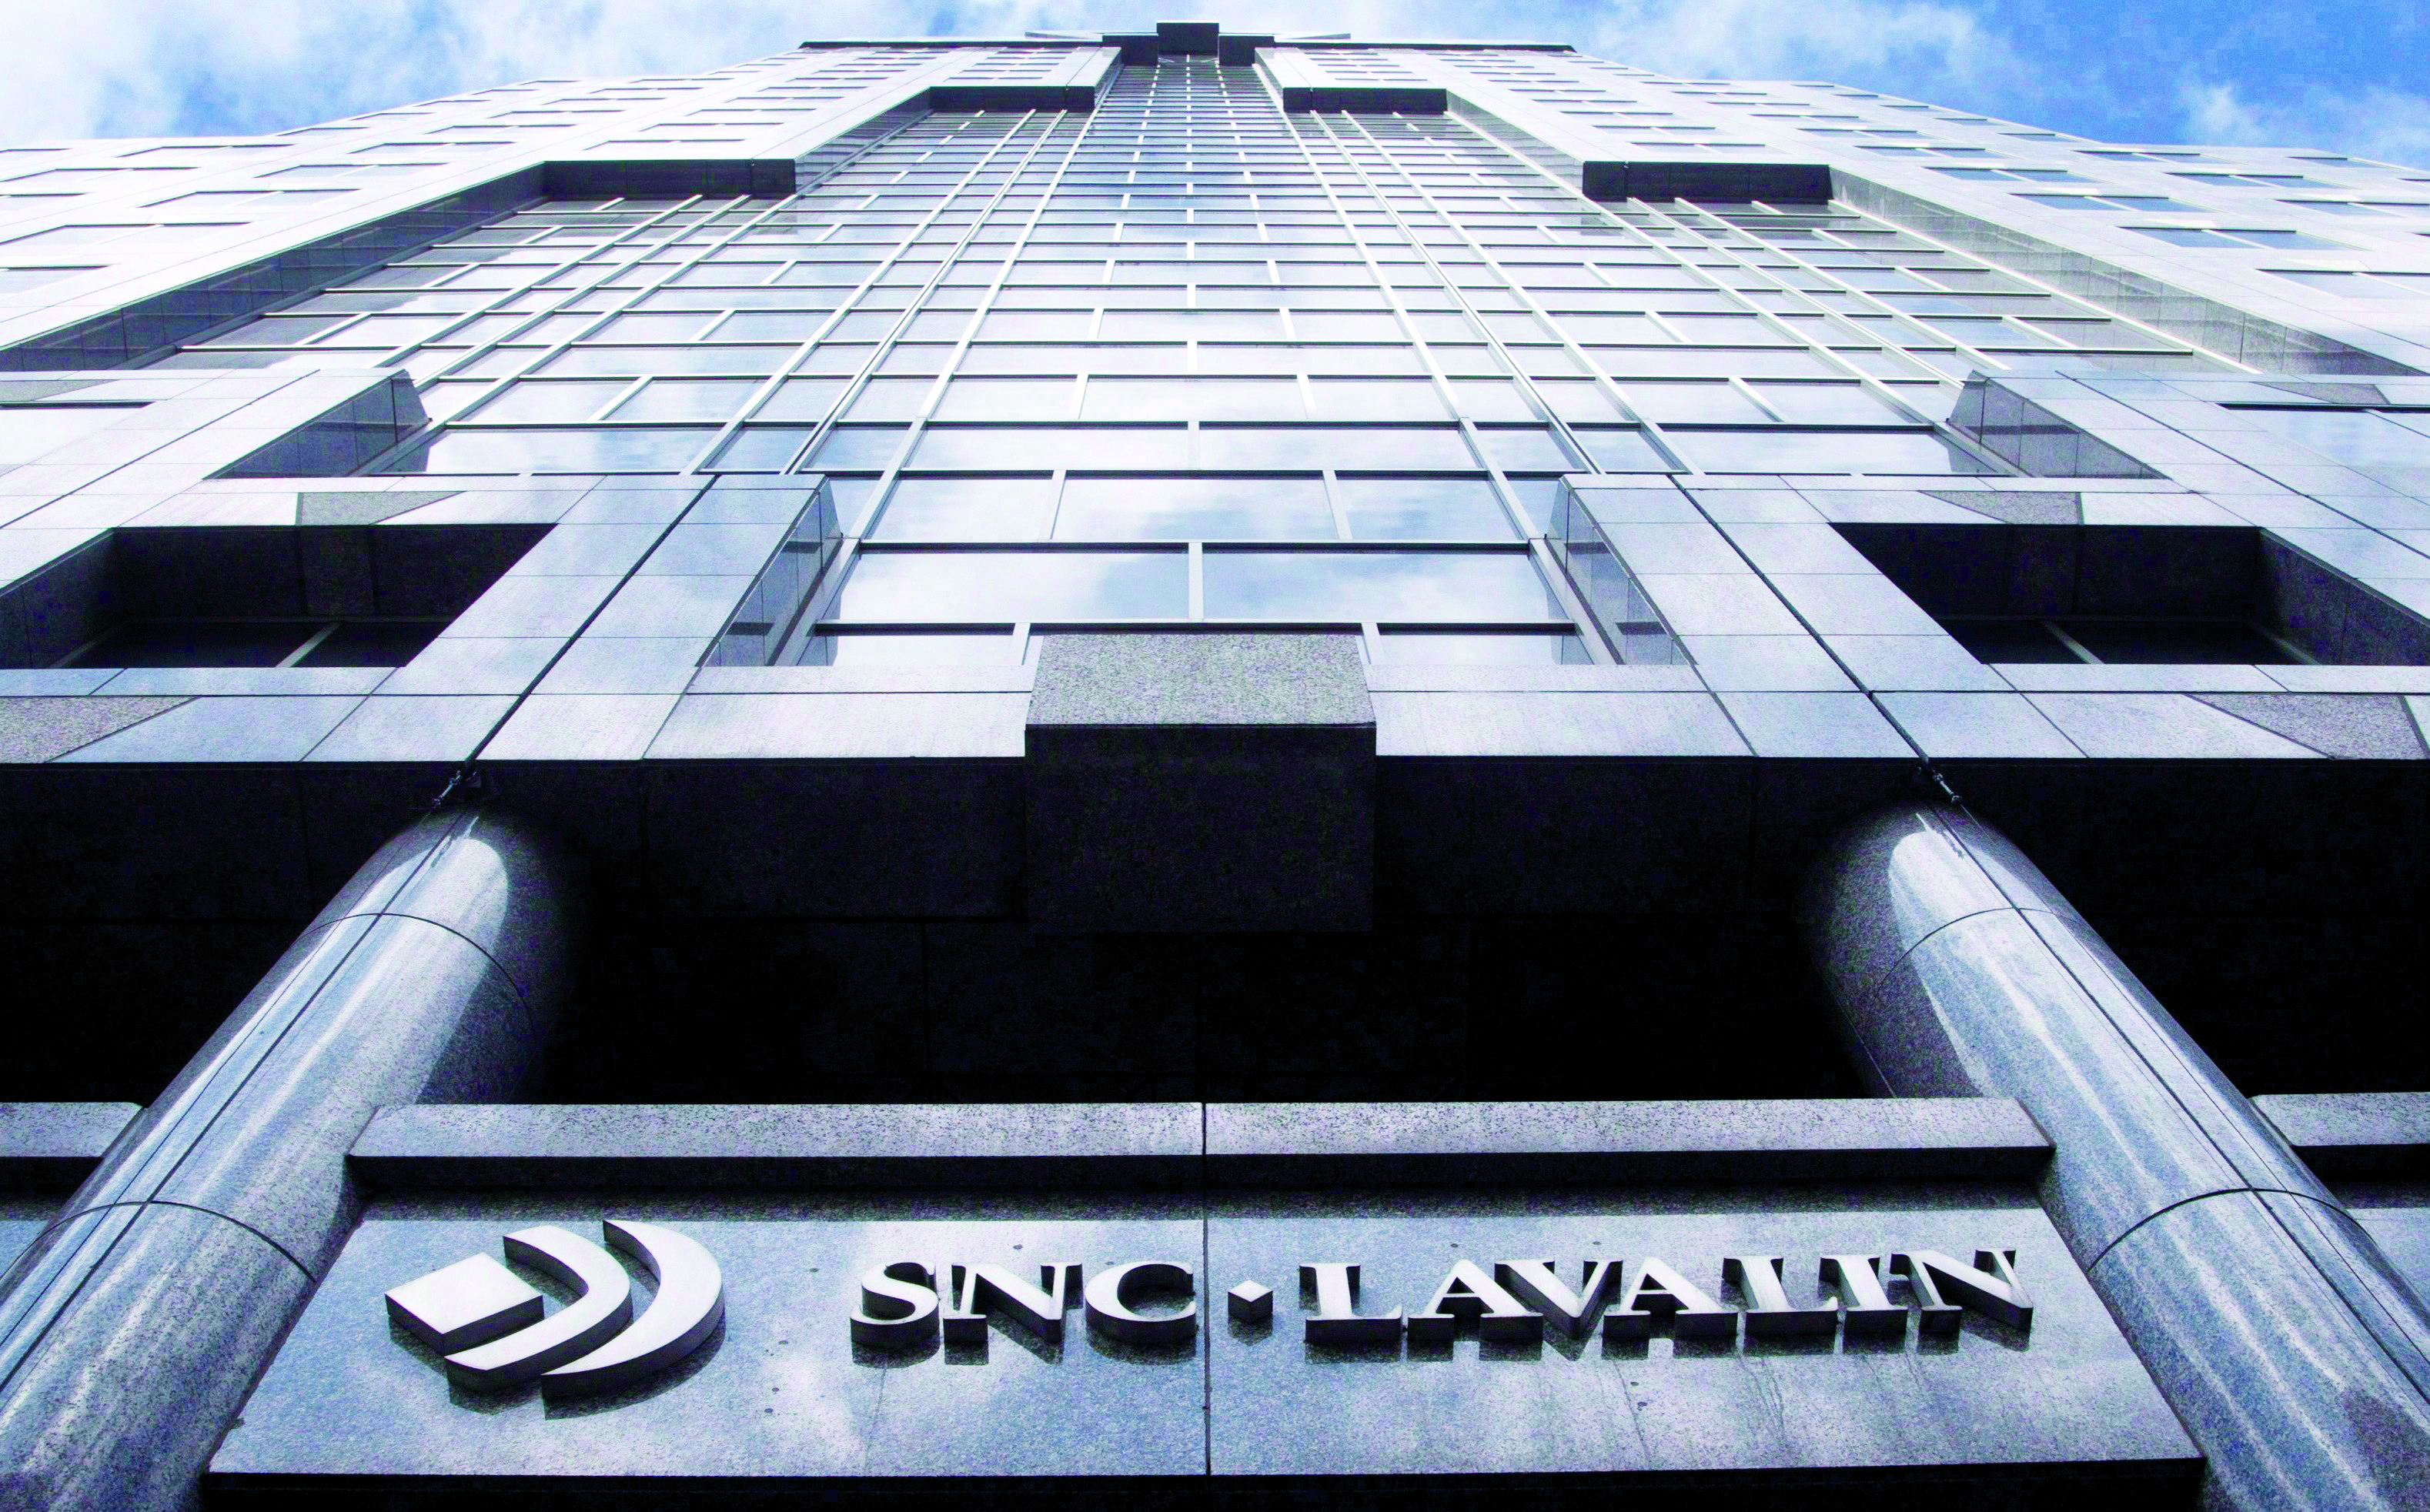 SNC-Lavalin's head office